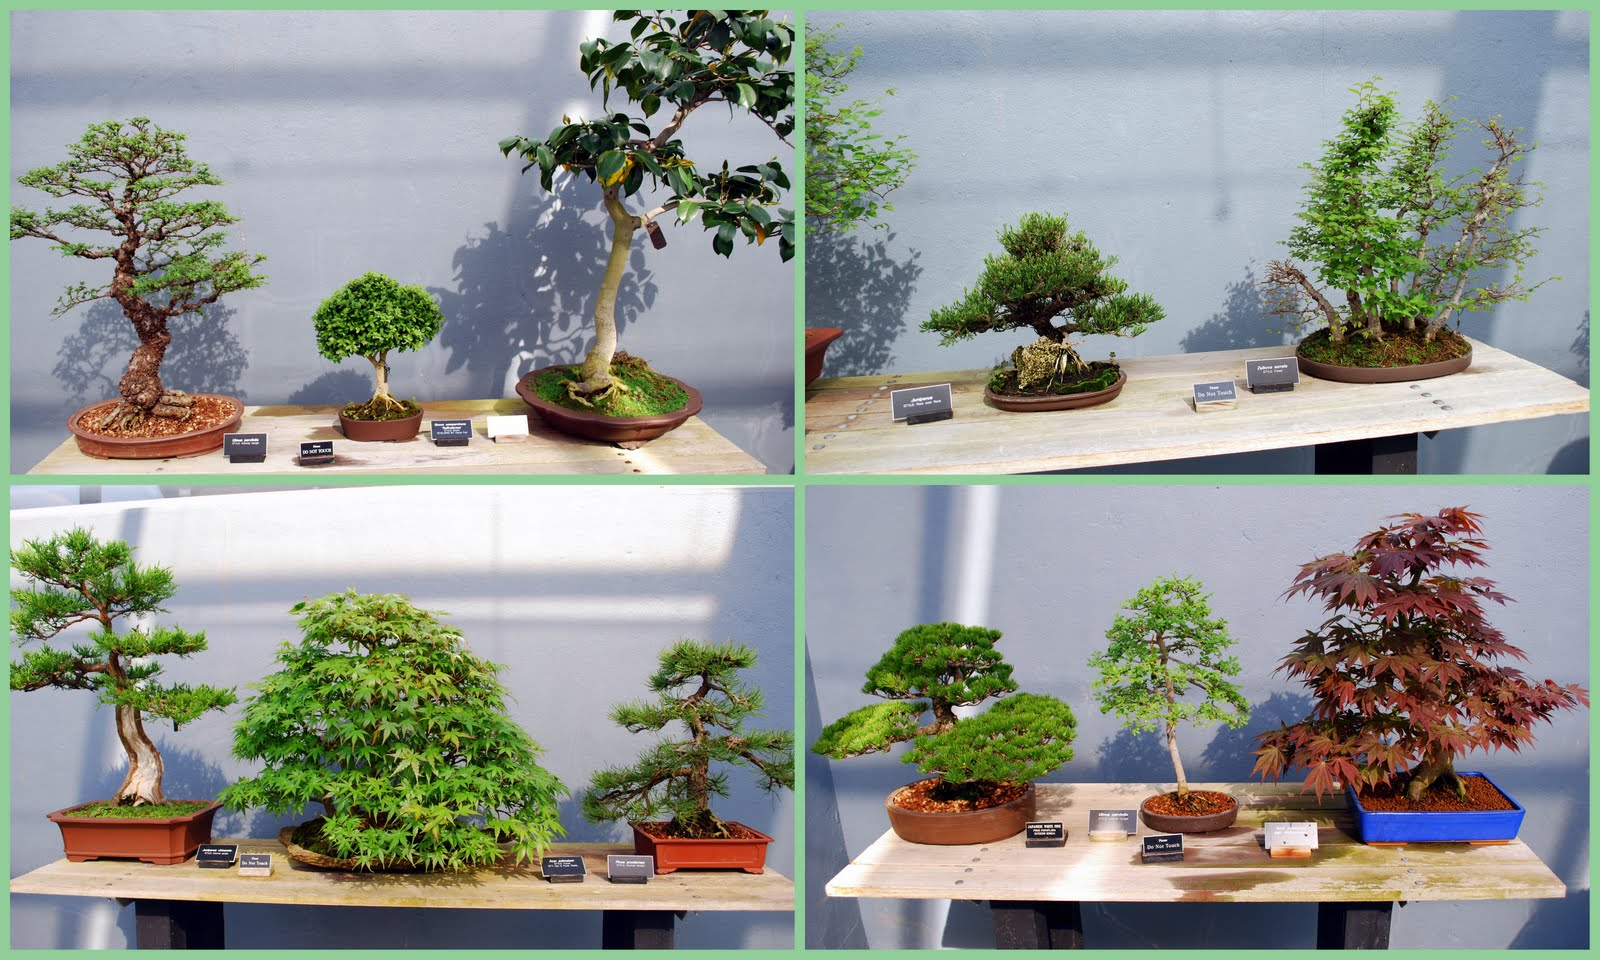 Mille Fiori Favoriti Bonsai At The Brooklyn Botanic Garden